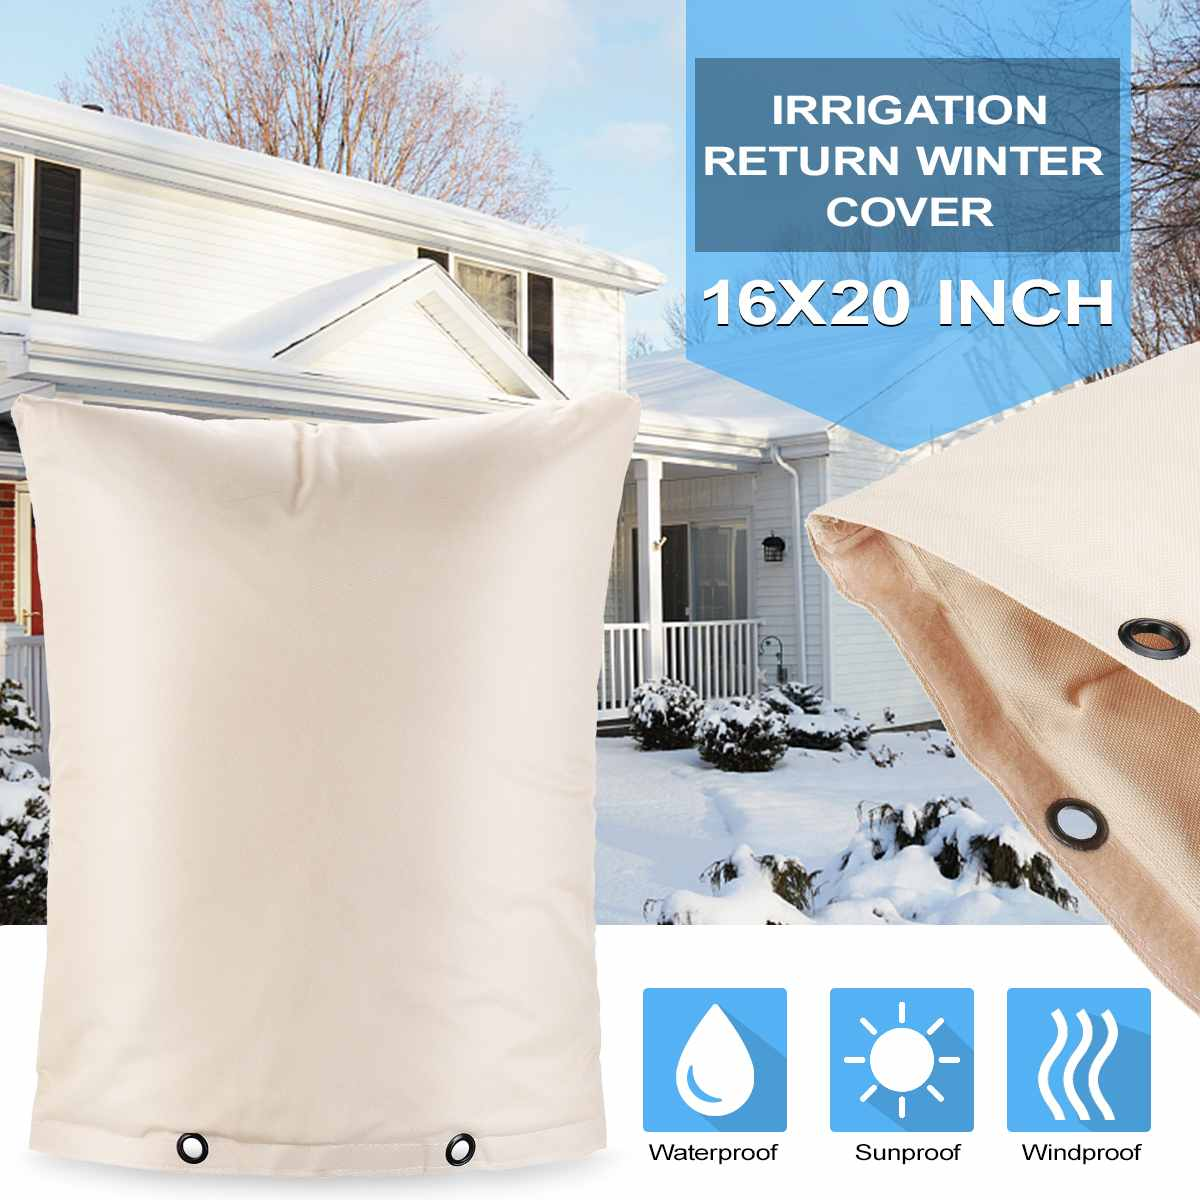 Outdoor Backflow Preventer Insulation Cover For Winter Pipe Freeze Protection Waterproof Pouch For Water Sprinkler Valve Box